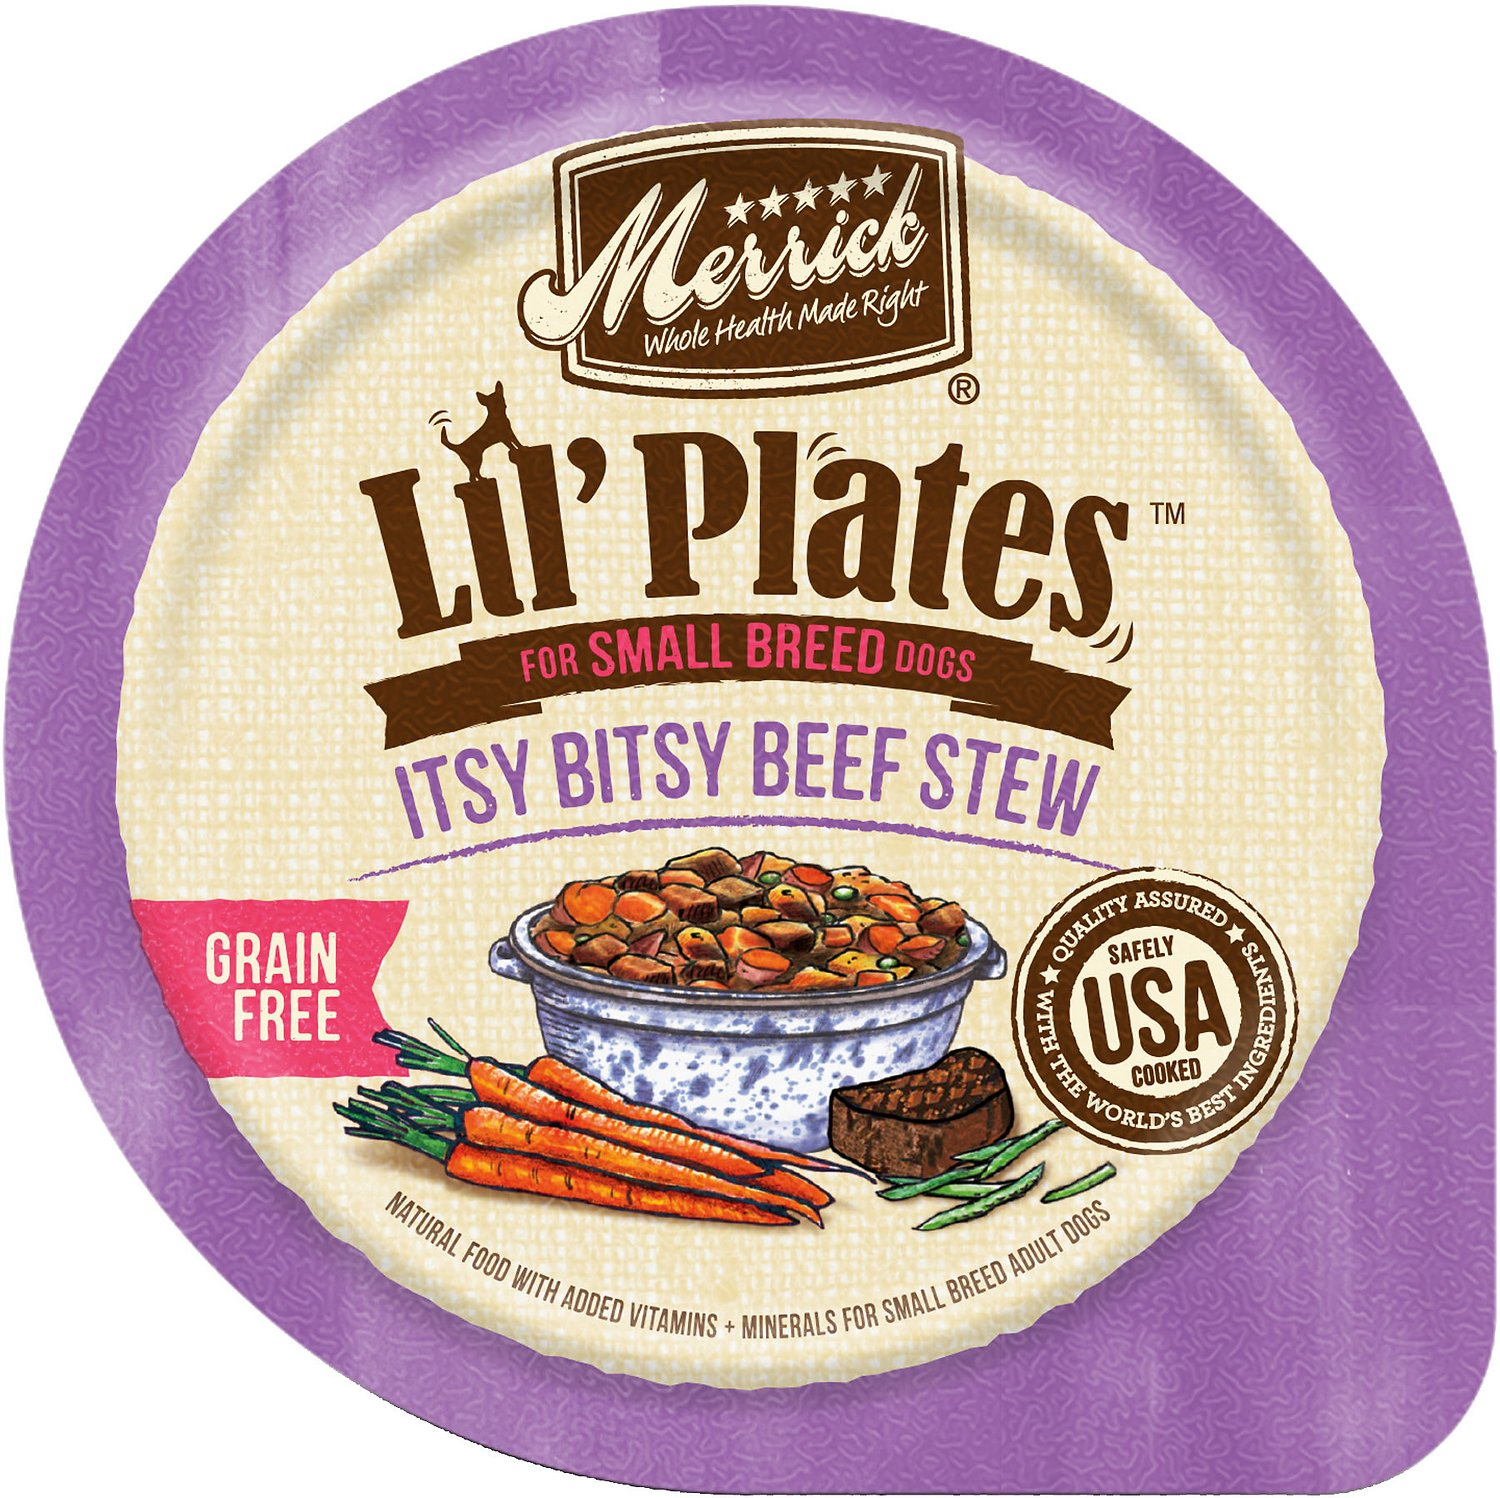 Merrick Lil' Plates Grain-Free Itsy Bitsy Beef Stew Dog Food Trays, 3.5-oz